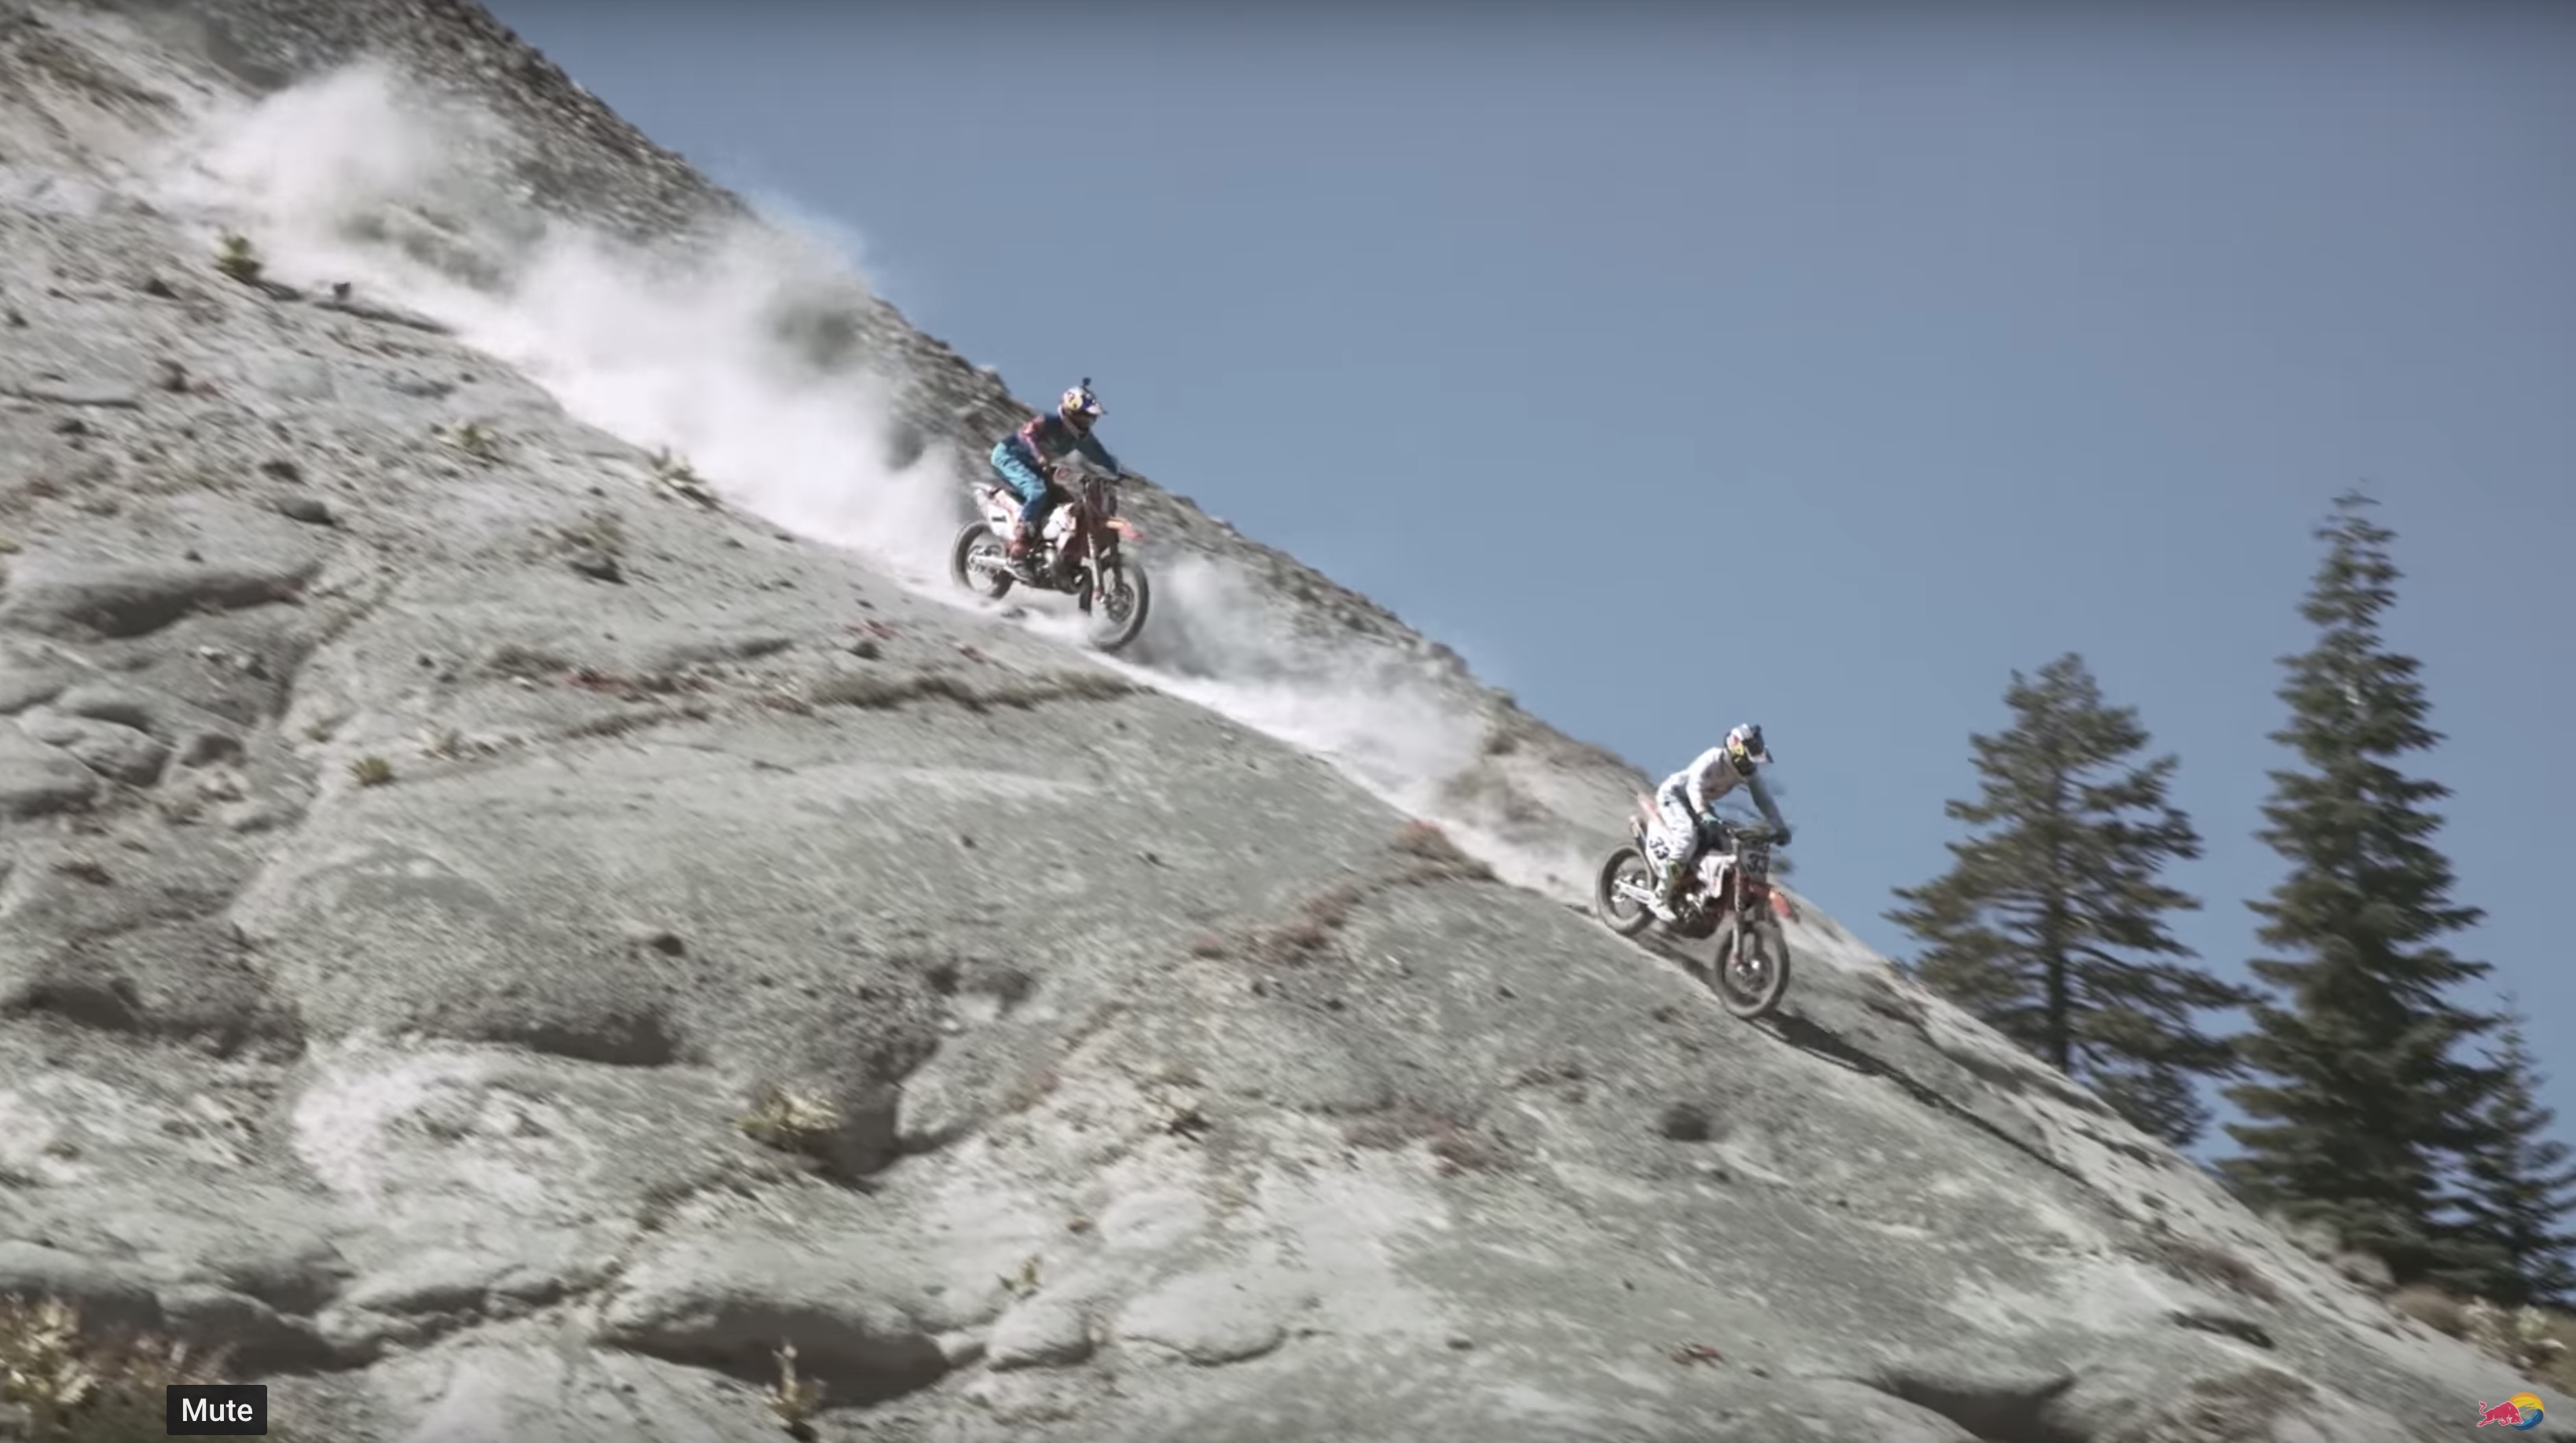 Watch Finding Insane Moto Lines At Donner Ski Ranch Unofficial Networks